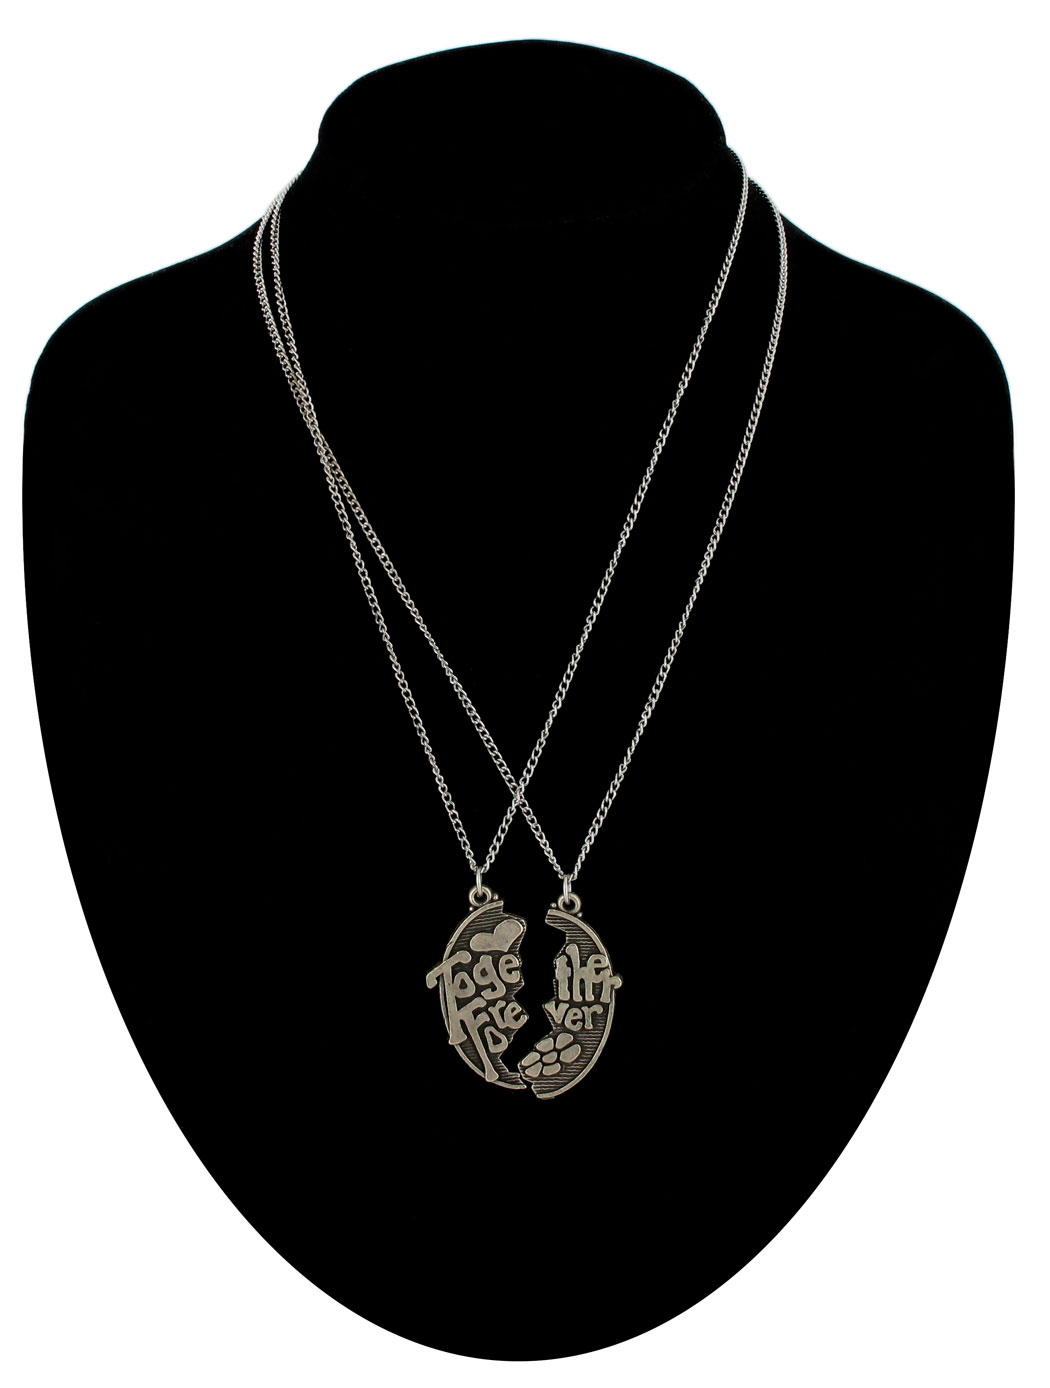 bestfriends necklace 2372 12 f jewelry gifts and gift